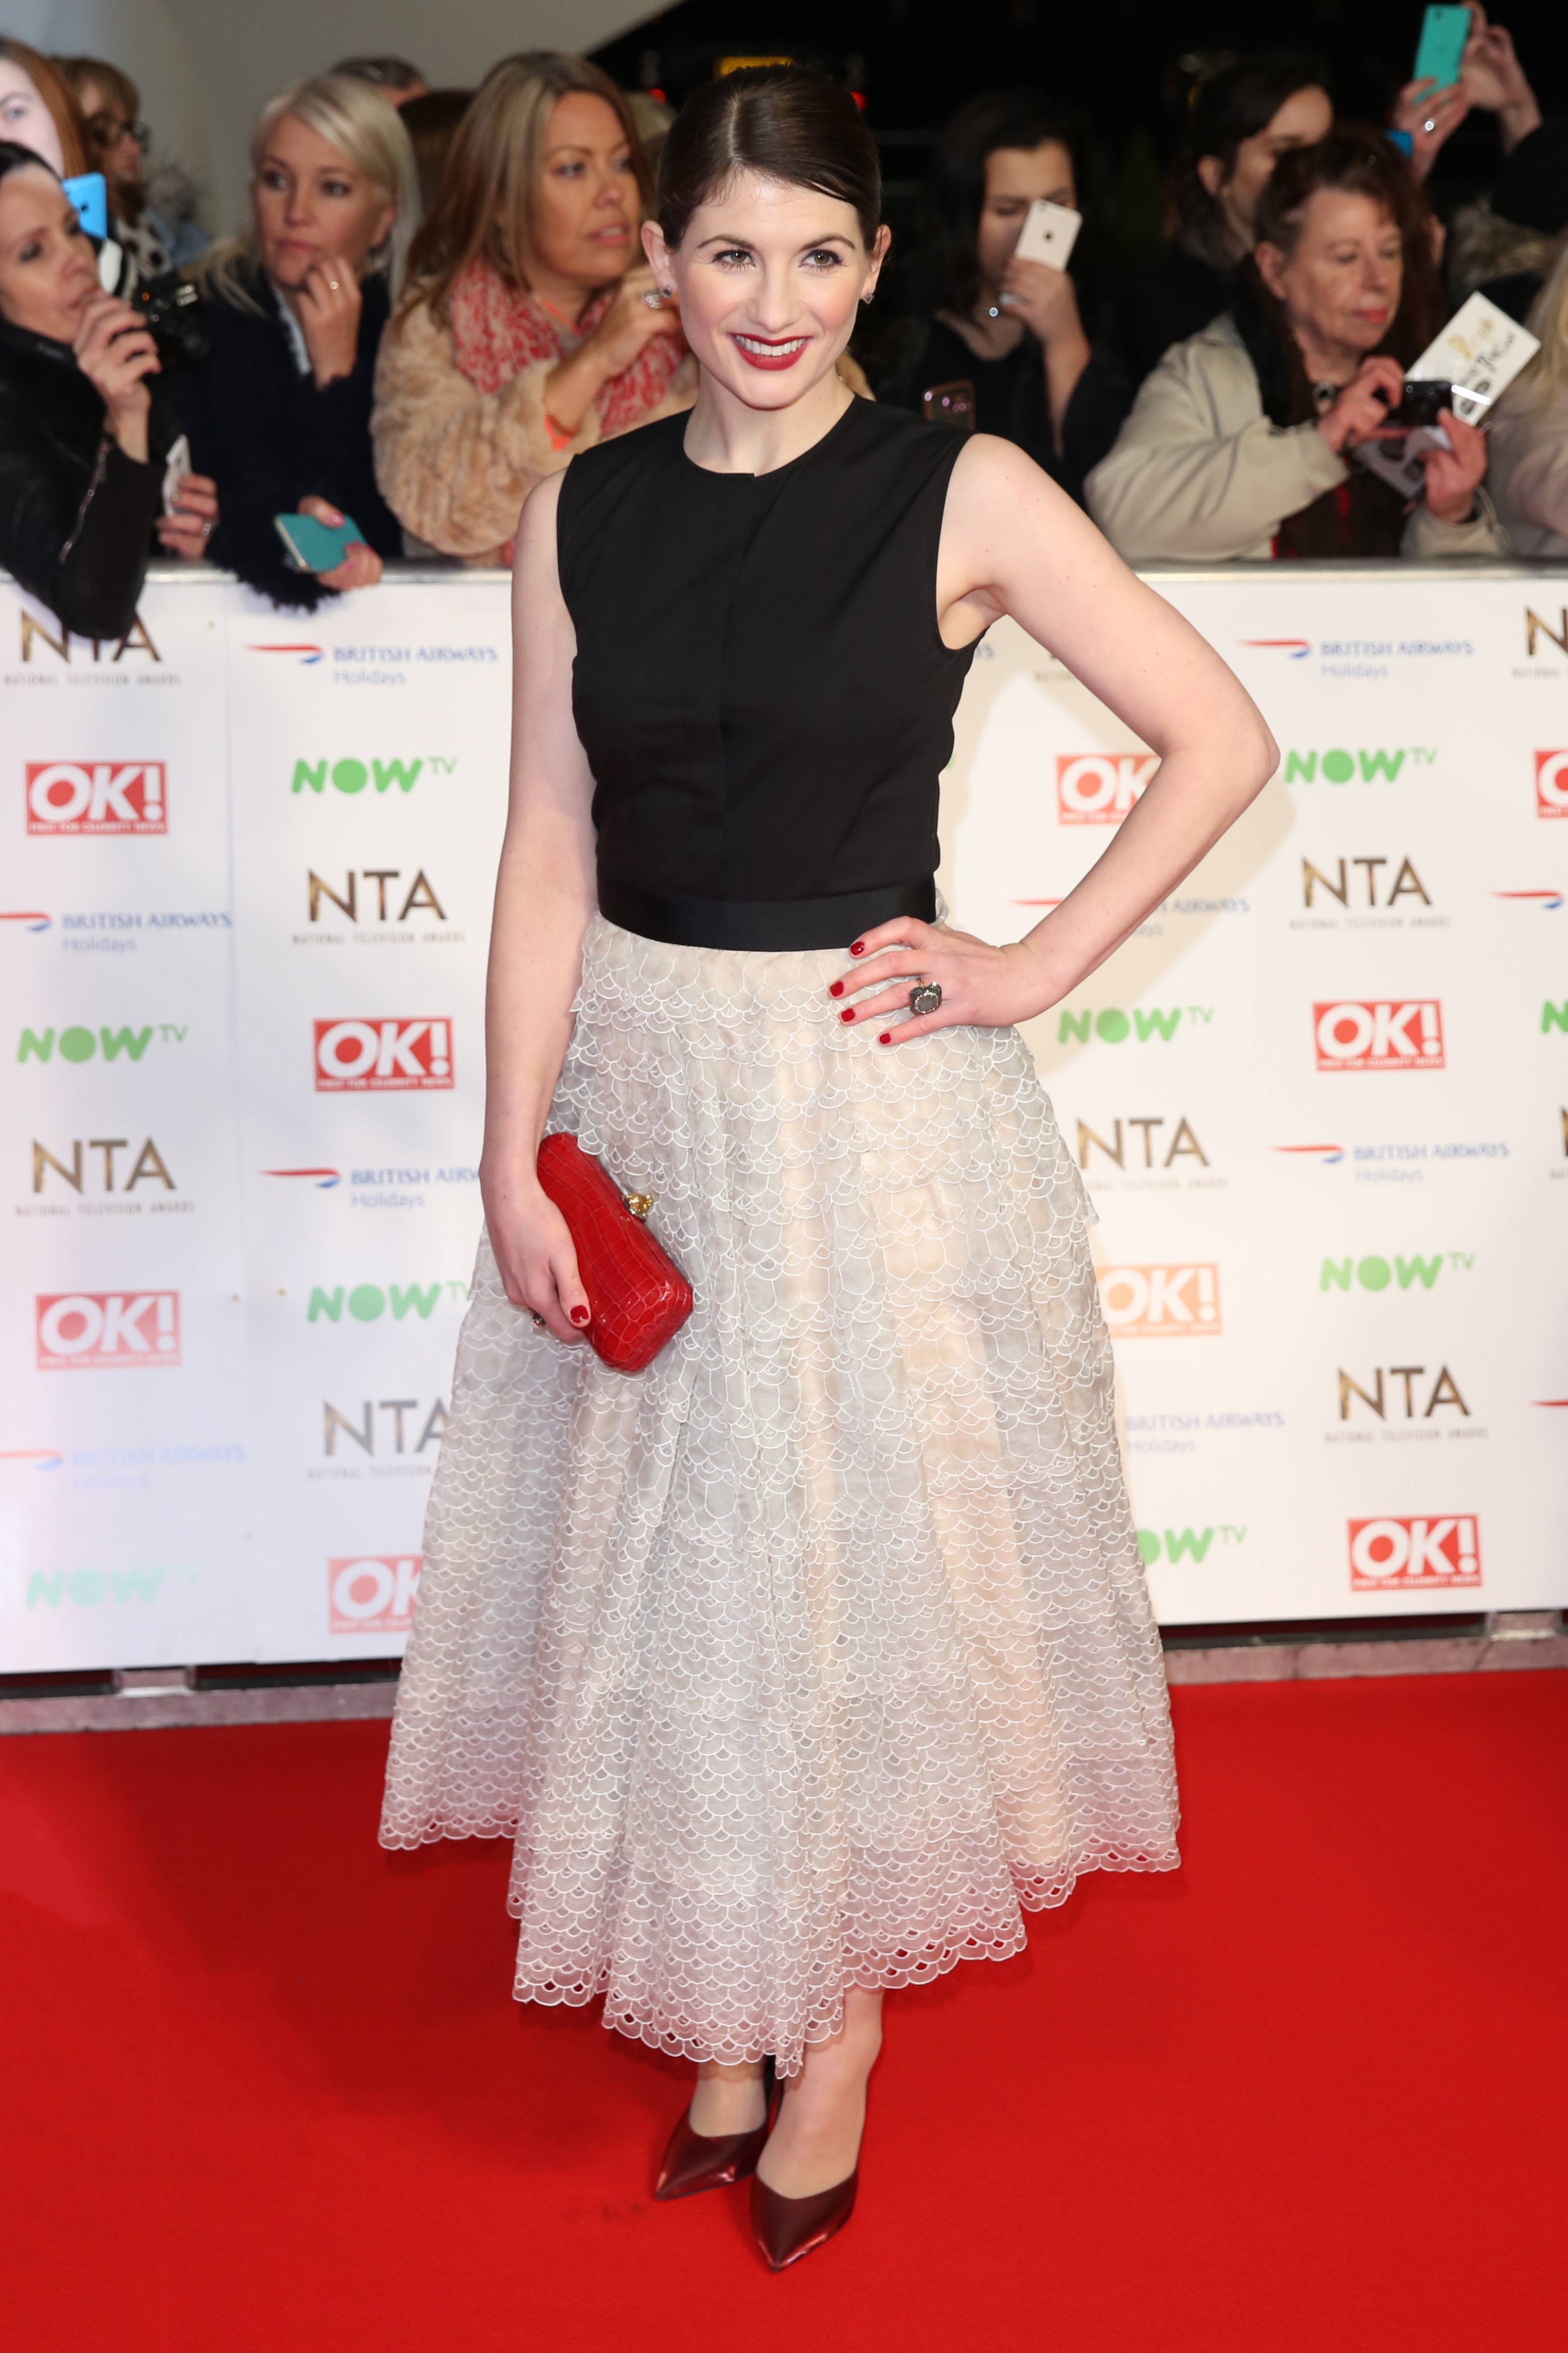 The National Television Awards 2016 (NTA's) held at the O2 Arena - Arrivals                                    Featuring: Jodie Whittaker                  Where: London, United Kingdom                  When: 21 Jan 2016                  Credit: Lia Toby/WENN.com